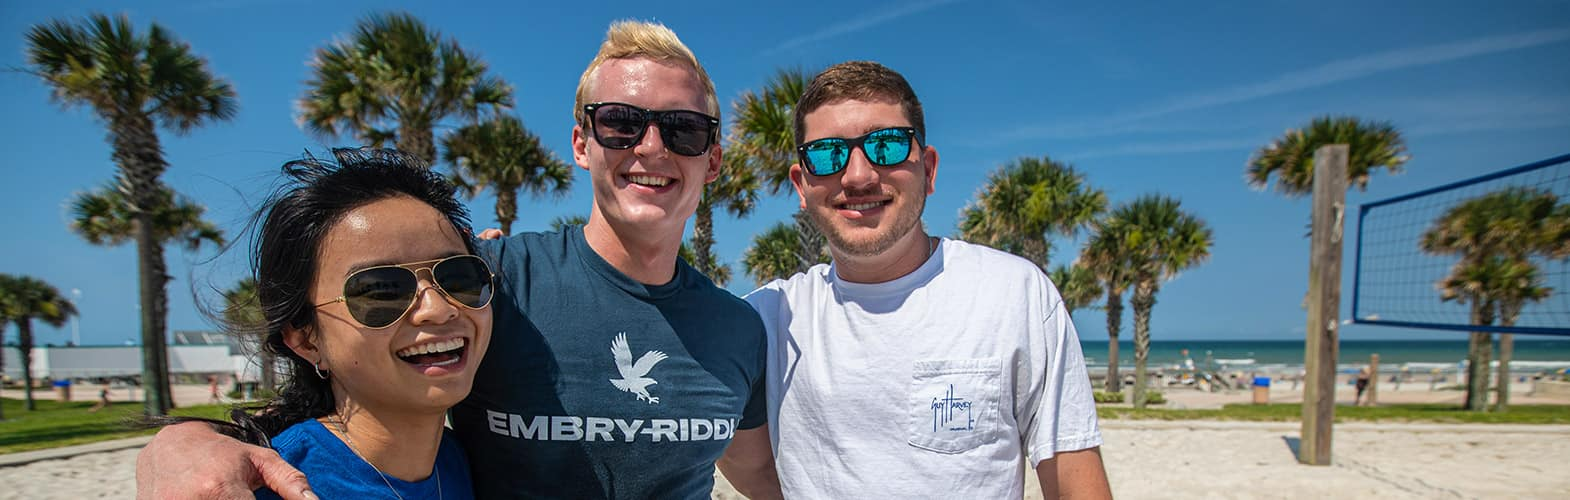 Three Embry-Riddle students at Daytona Beach